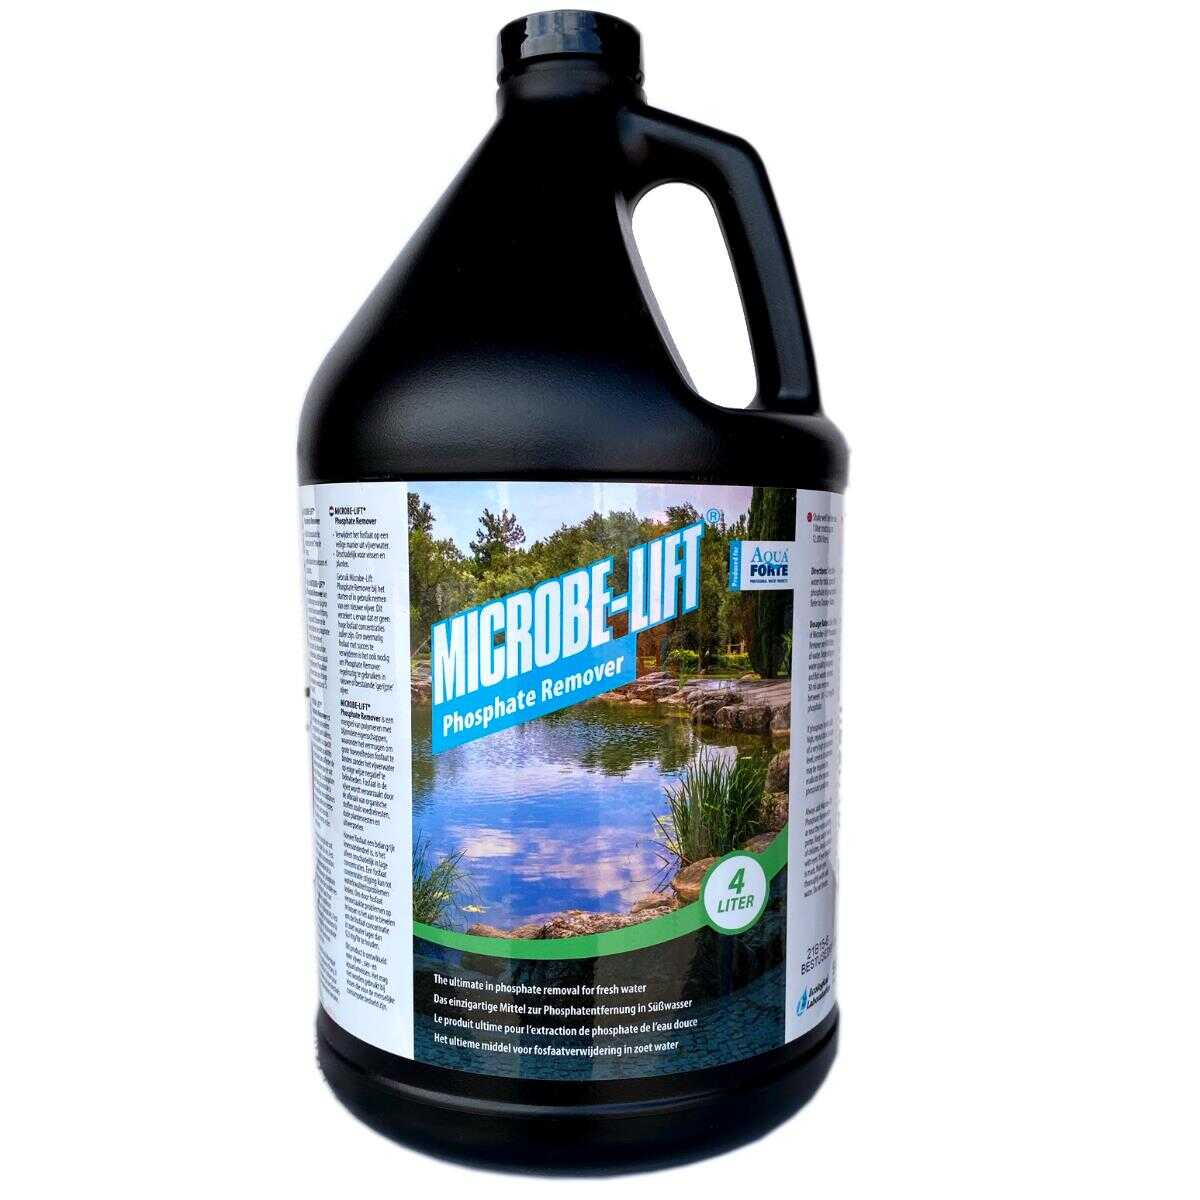 Microbe-Lift Phosphate Remover 4 Liter